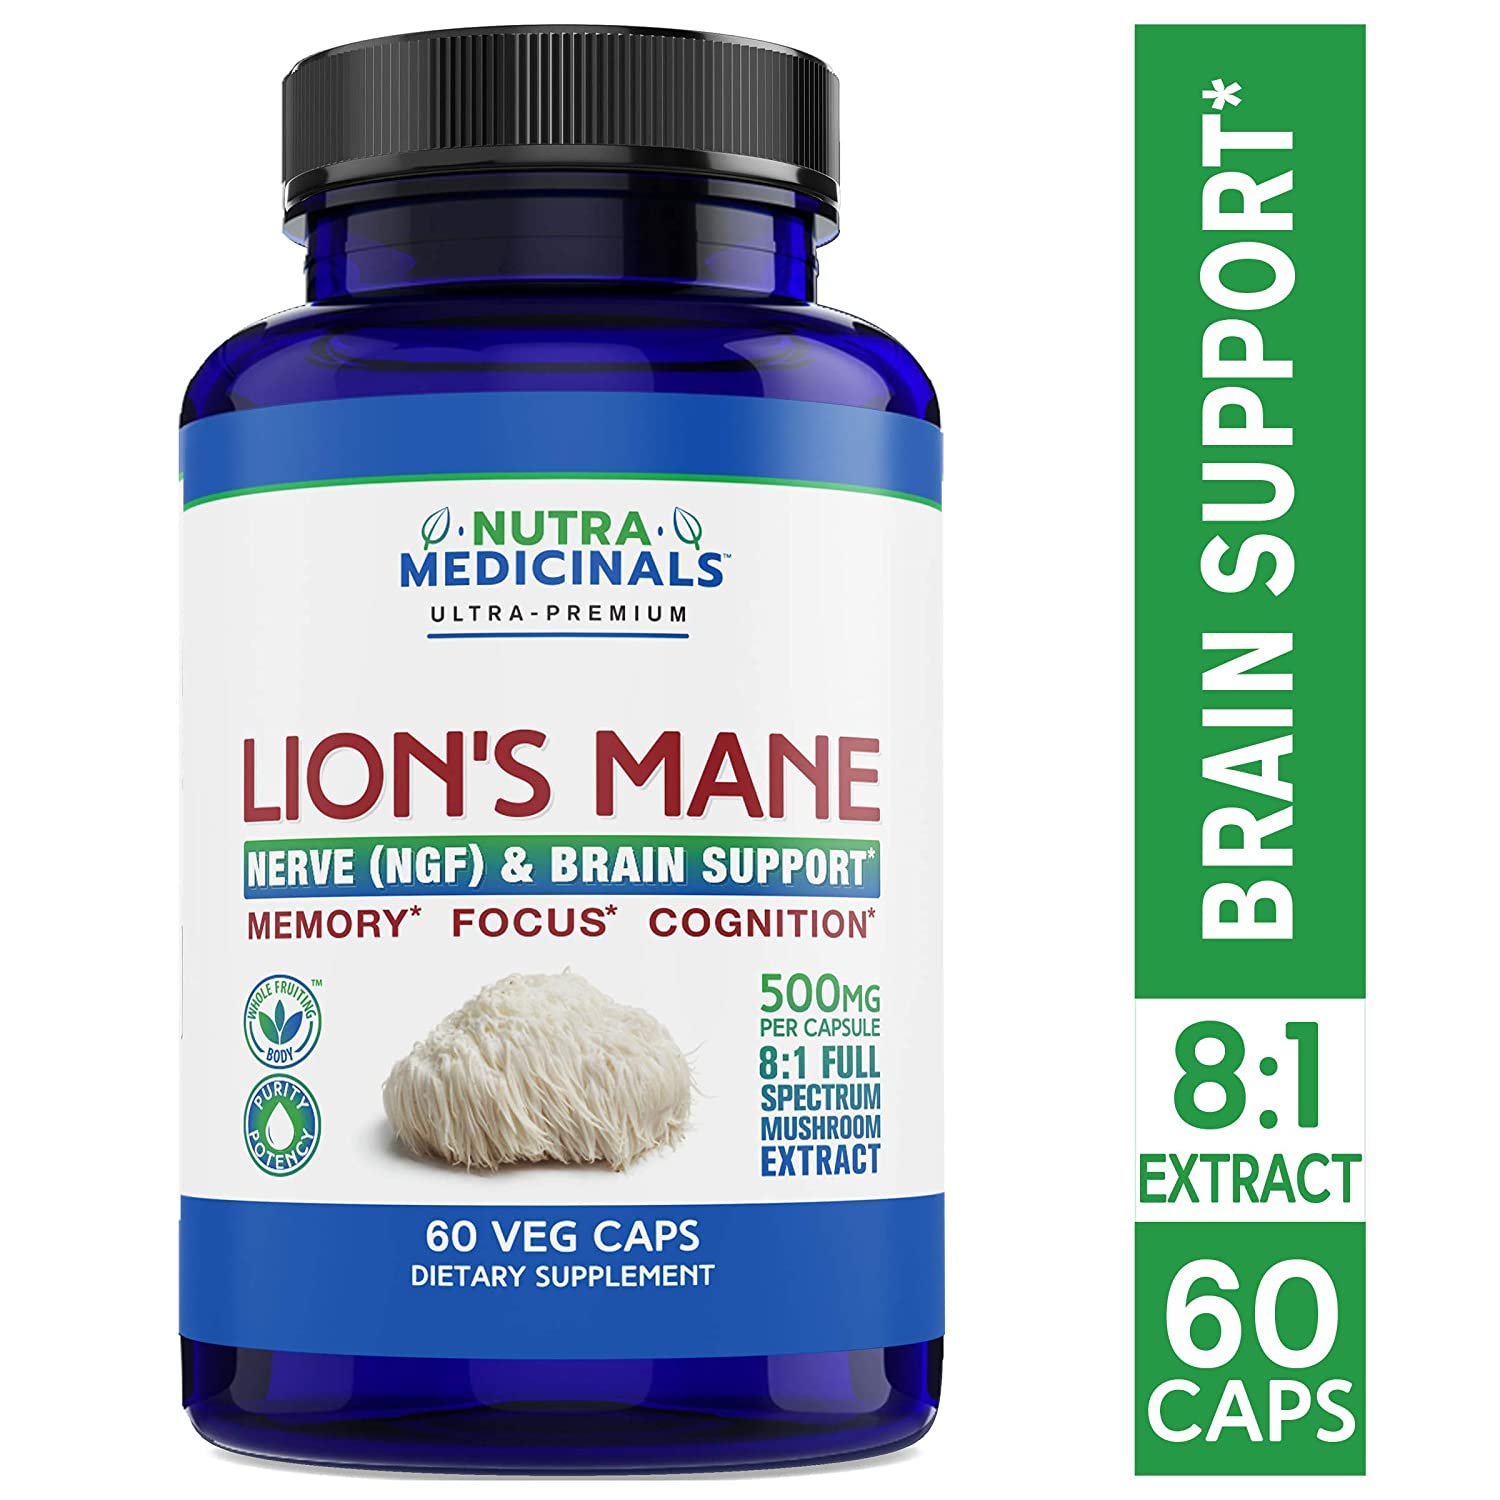 NutraMedicinals Lion s Mane Mushroom Capsules Nerve NGF Brain Support Natural Nootropic Supplement for Memory, Focus Cognition Non-GMO, Vegan, Organic 60 Caps, 8 1 Extract